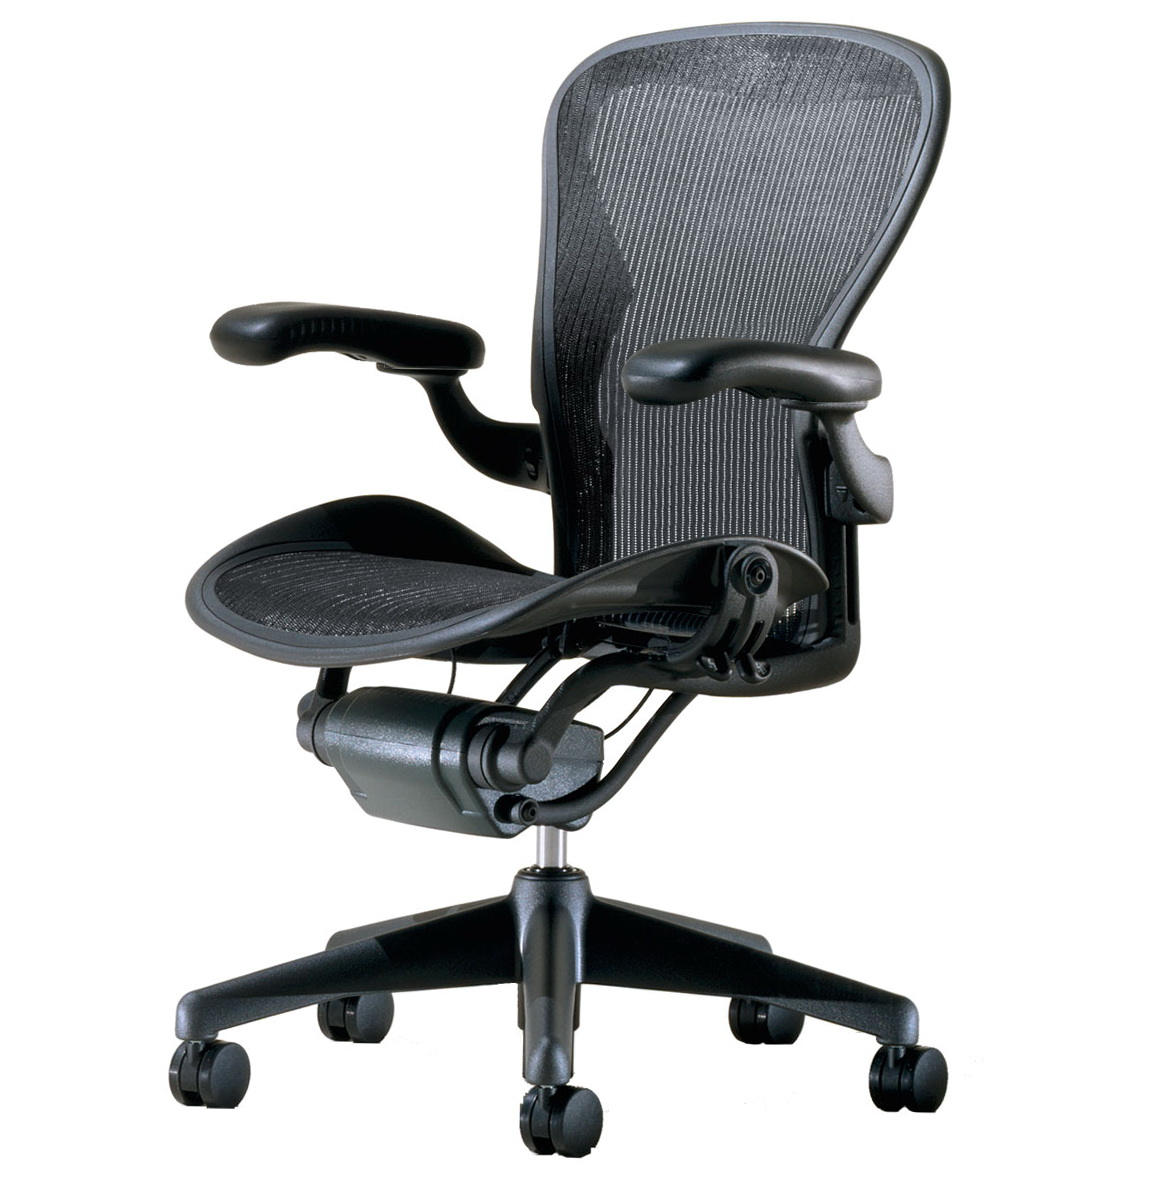 Bad Ergonomic Office Chairs